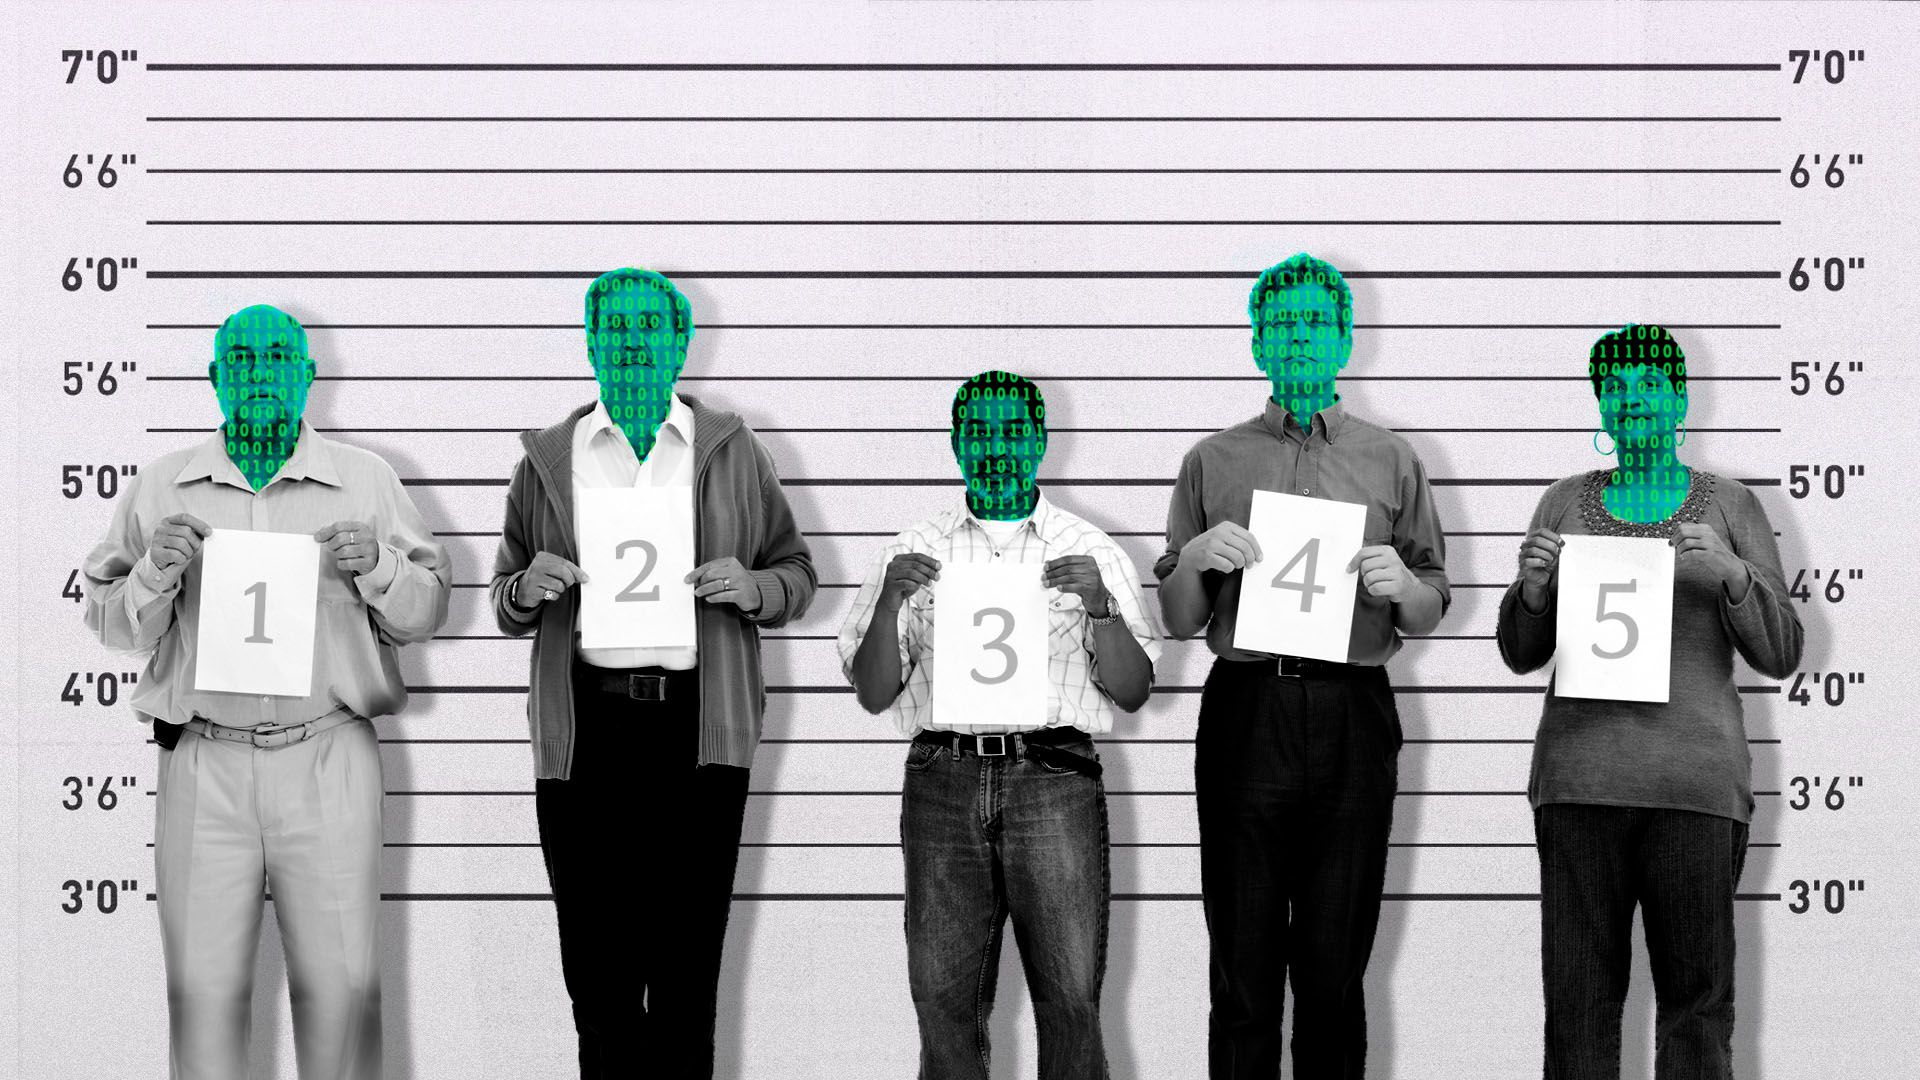 Illustration of a police line-up with binary code over the people's faces